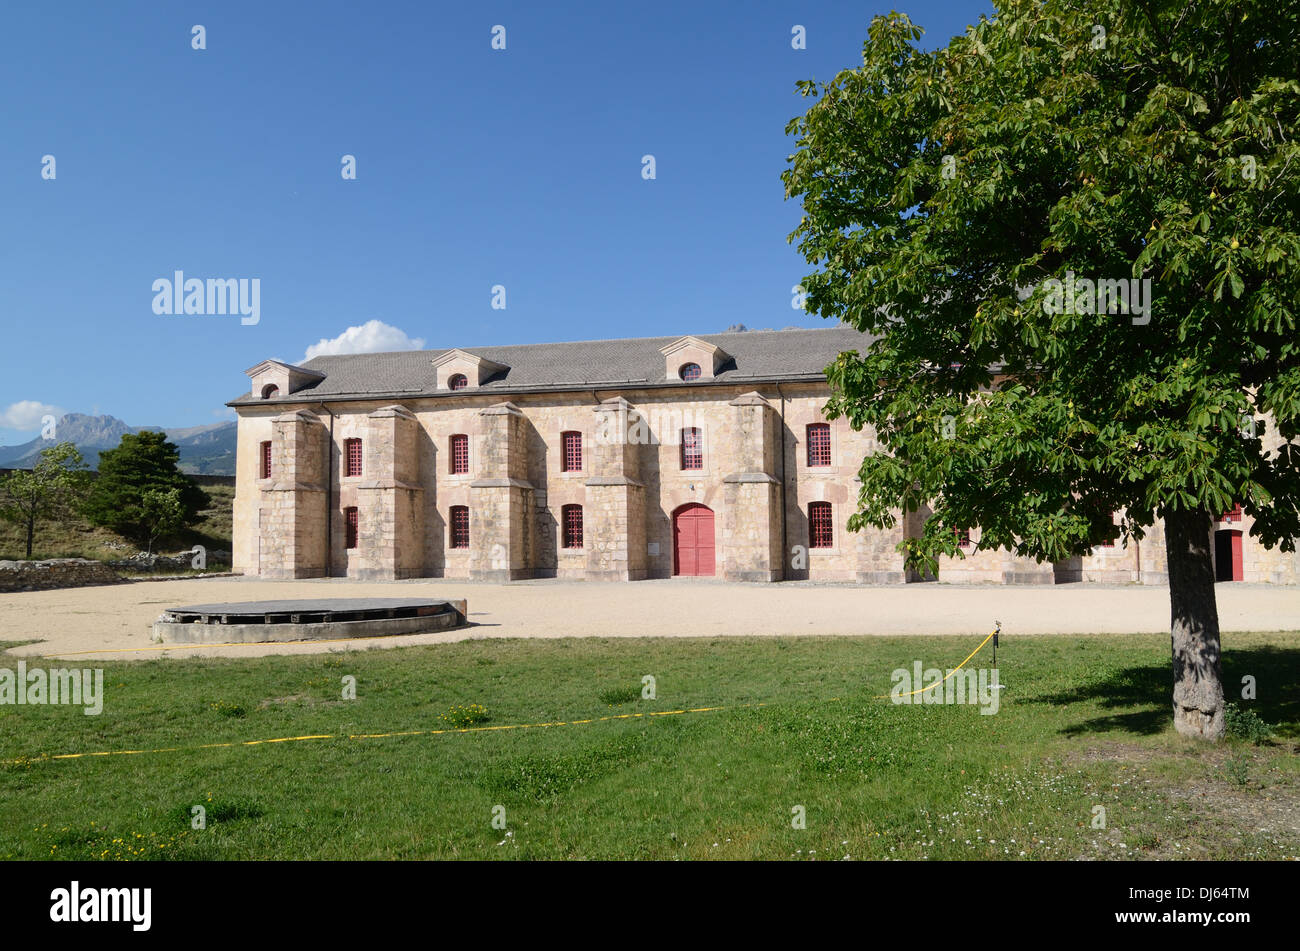 Military Arsenal Munitions or Ammunition Store Mont-Dauphin Hautes-Alpes France - Stock Image